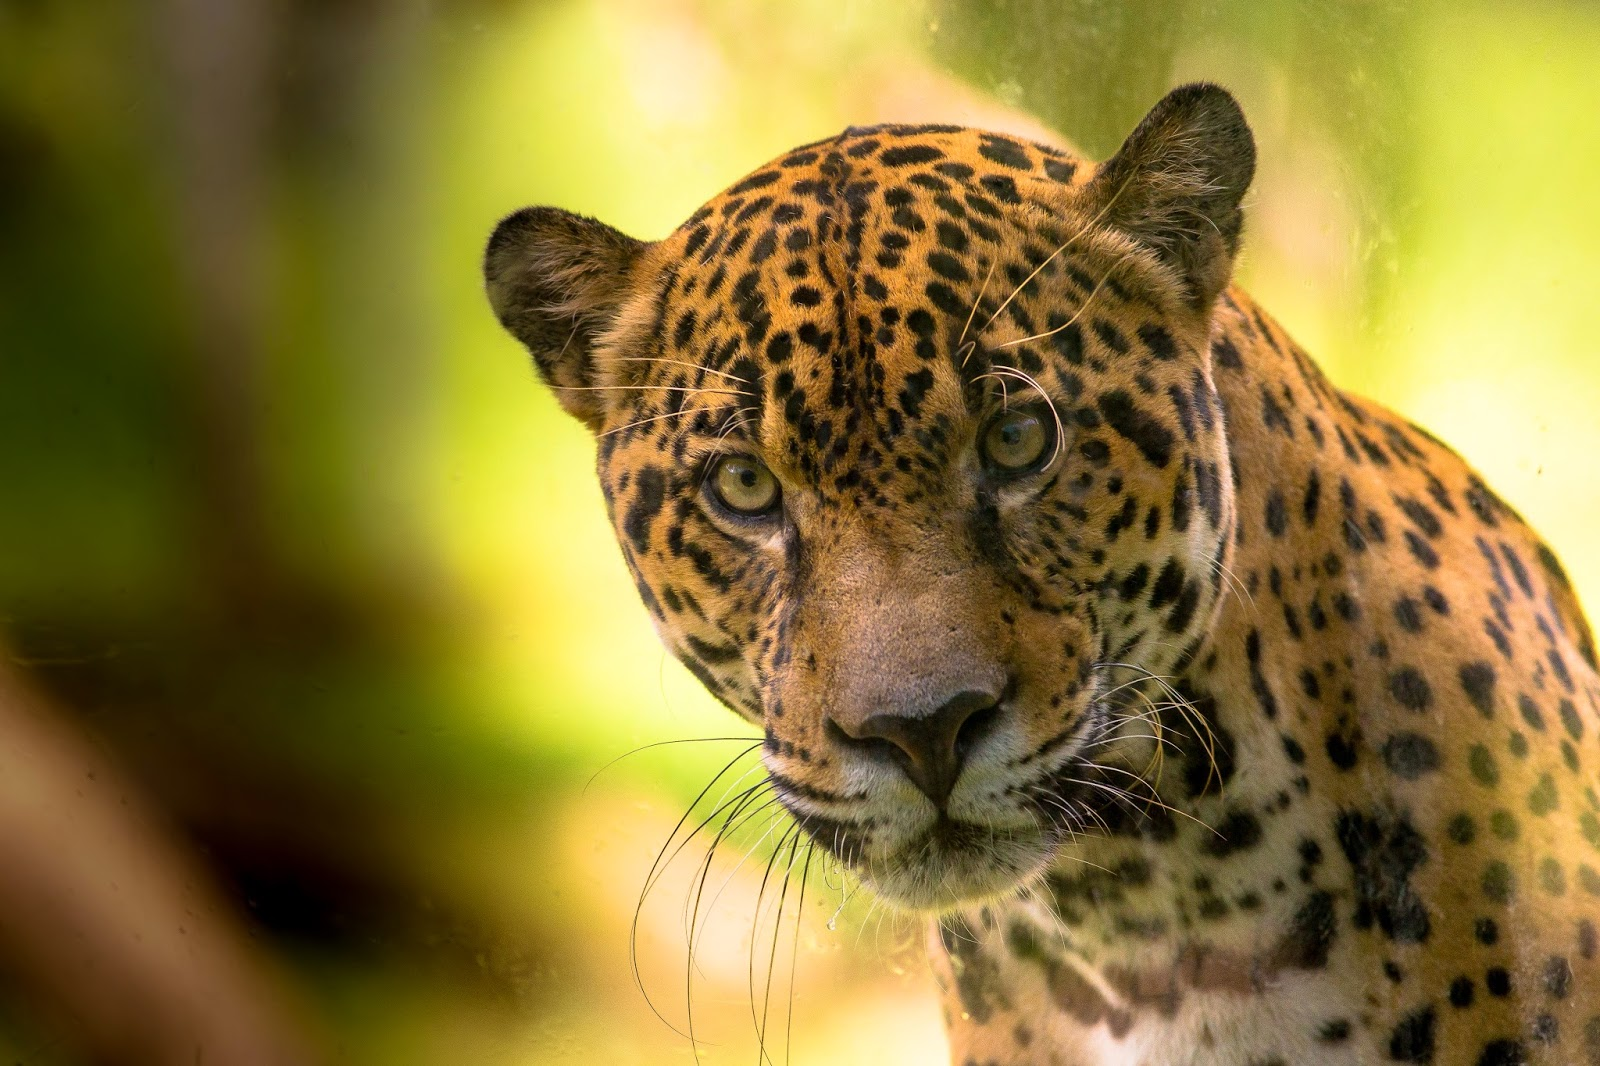 endangered environment essays Article shared by:  essay on wildlife conservation like forests, wildlife is also a national resource, which not only helps in maintaining the ecological balance but is also beneficial from economic, recreational and aesthetic points of view.